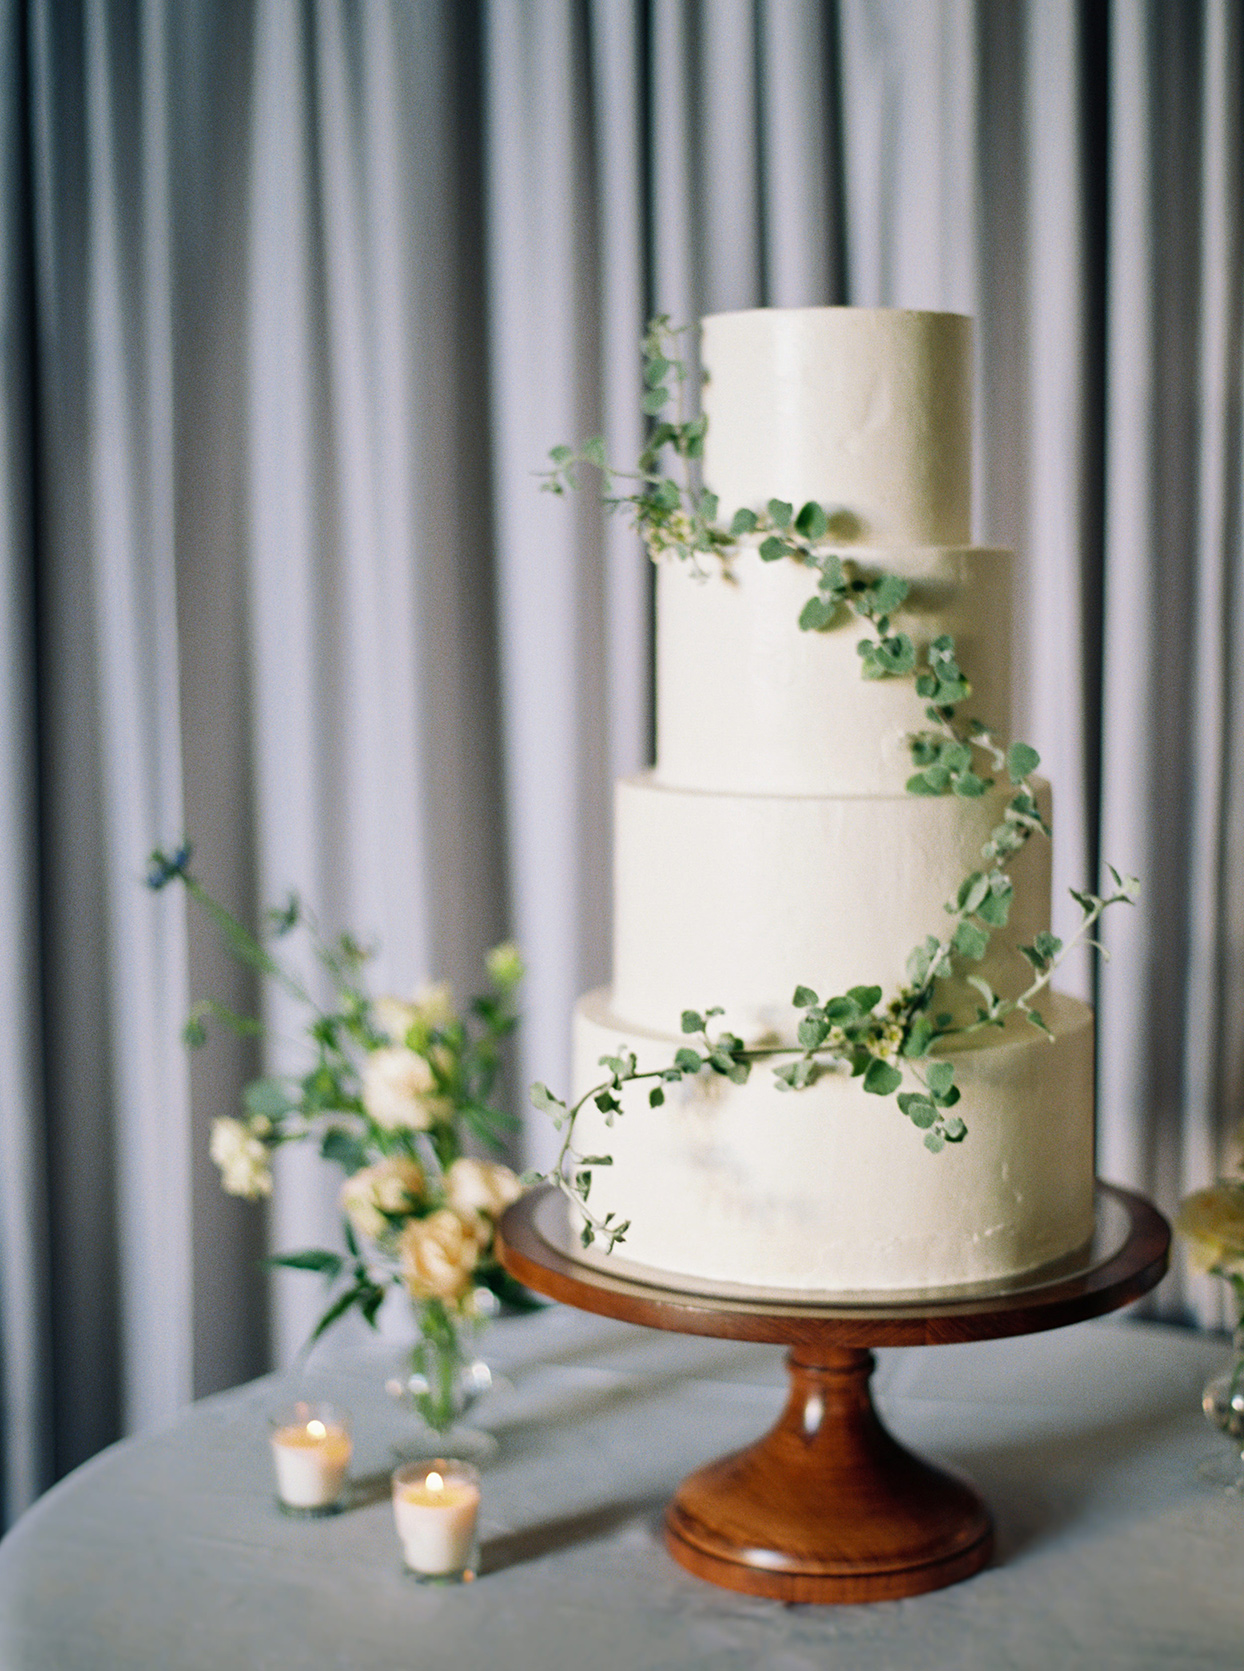 kimmie mike simple white wedding cake on wooden stand with green vine